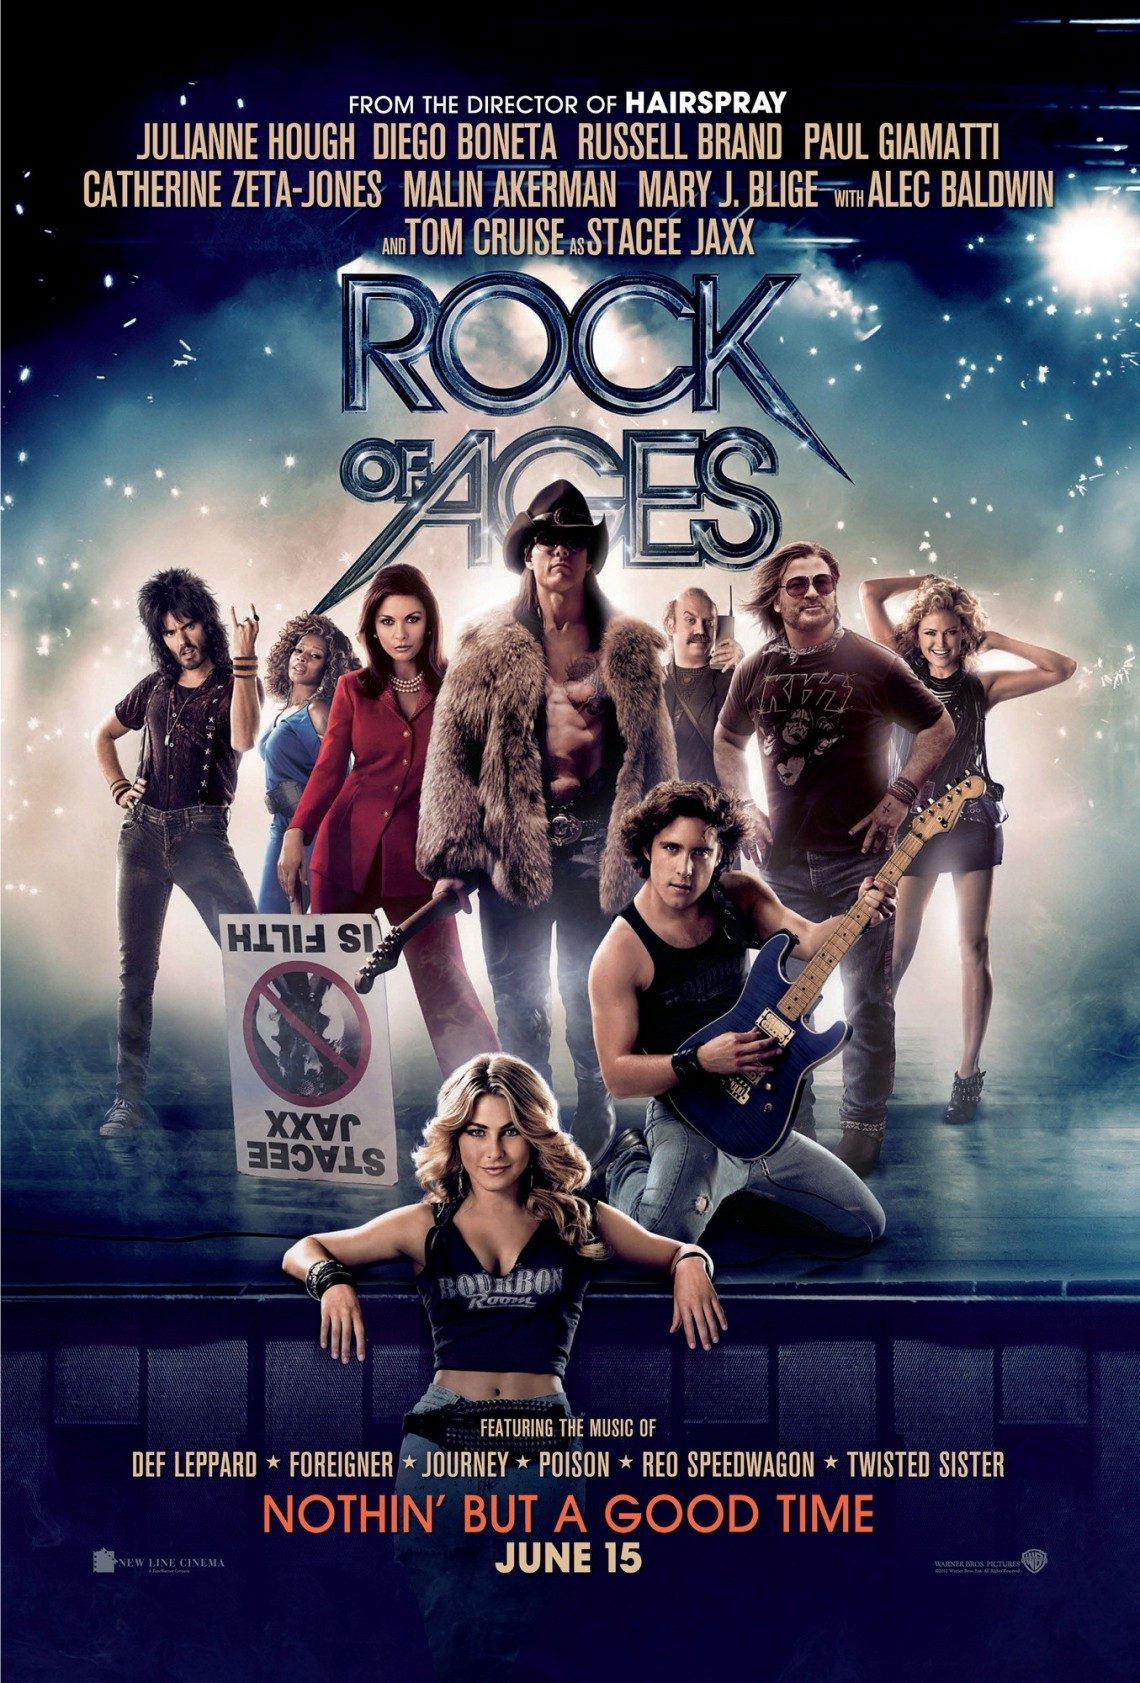 Critique de film : Rock of Ages